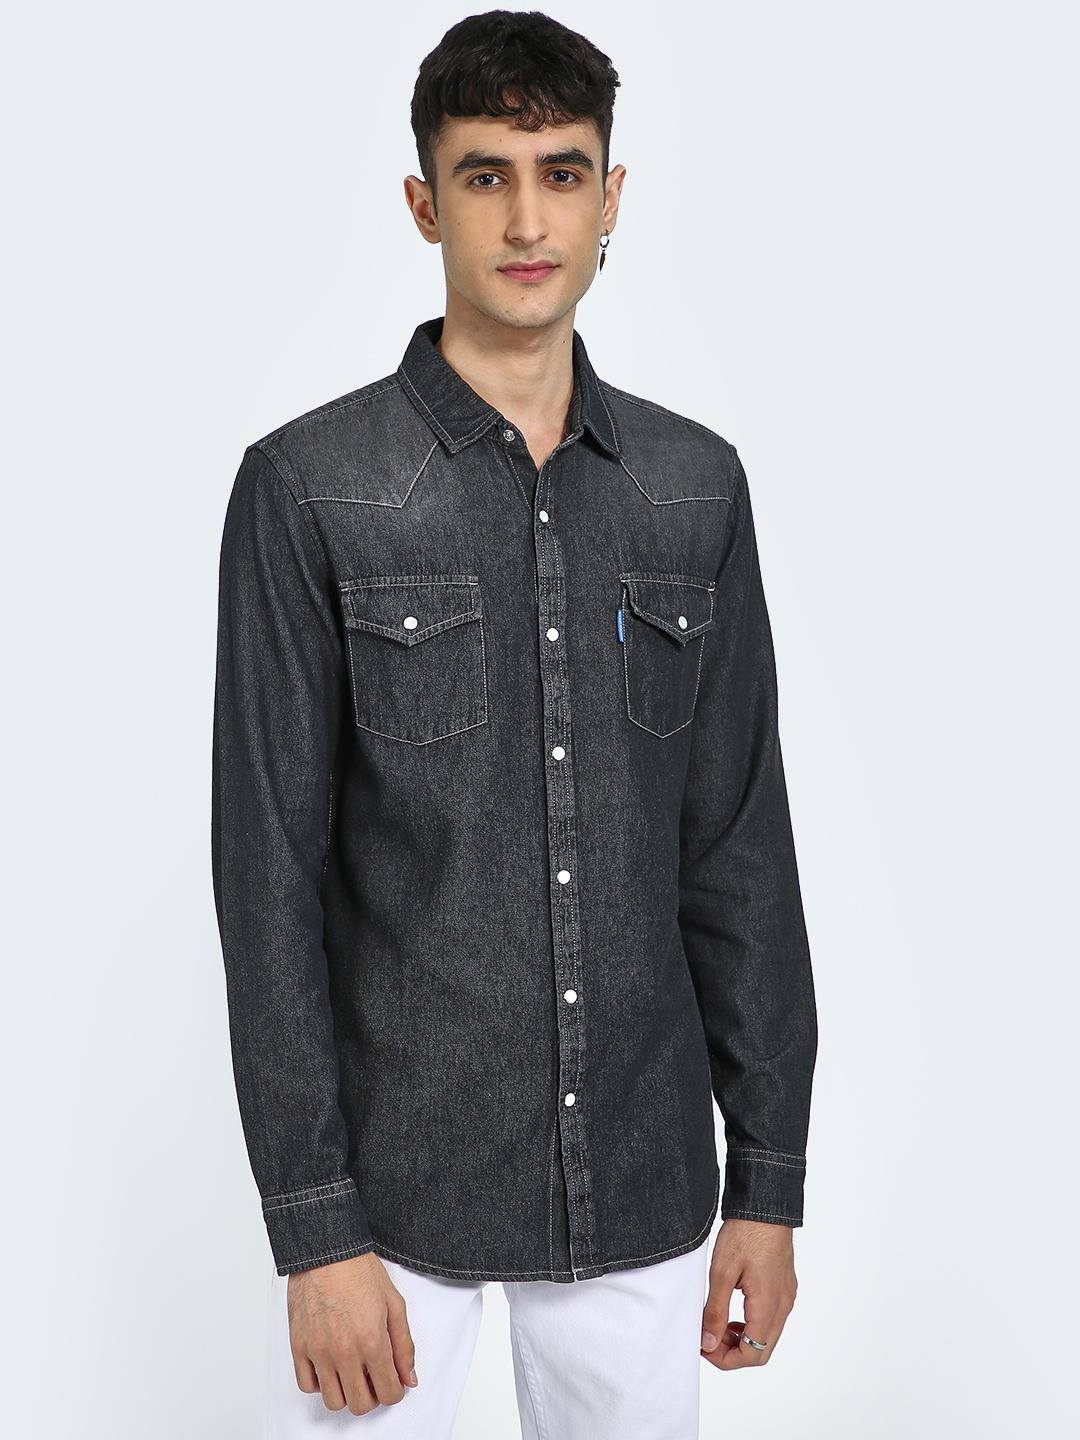 Blue Saint Black/Charcoal Chambray Patch Pocket Causal Shirt 1